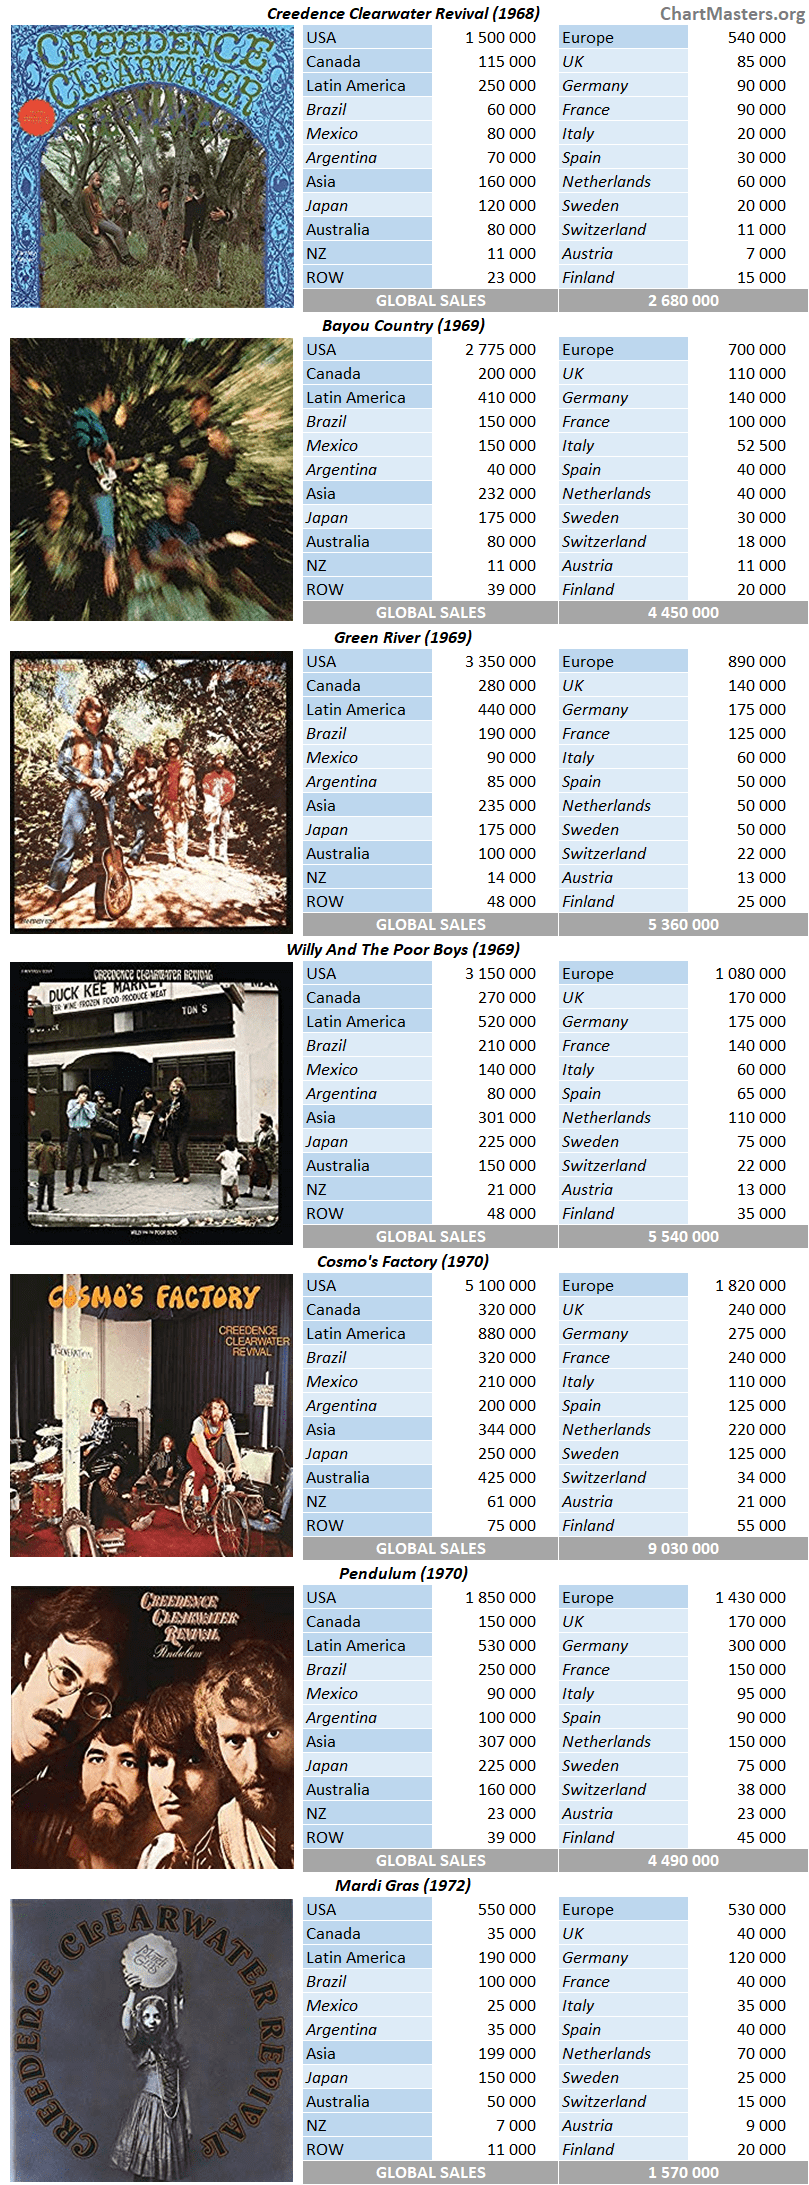 Creedence Clearwater Revival studio album sales breakdowns